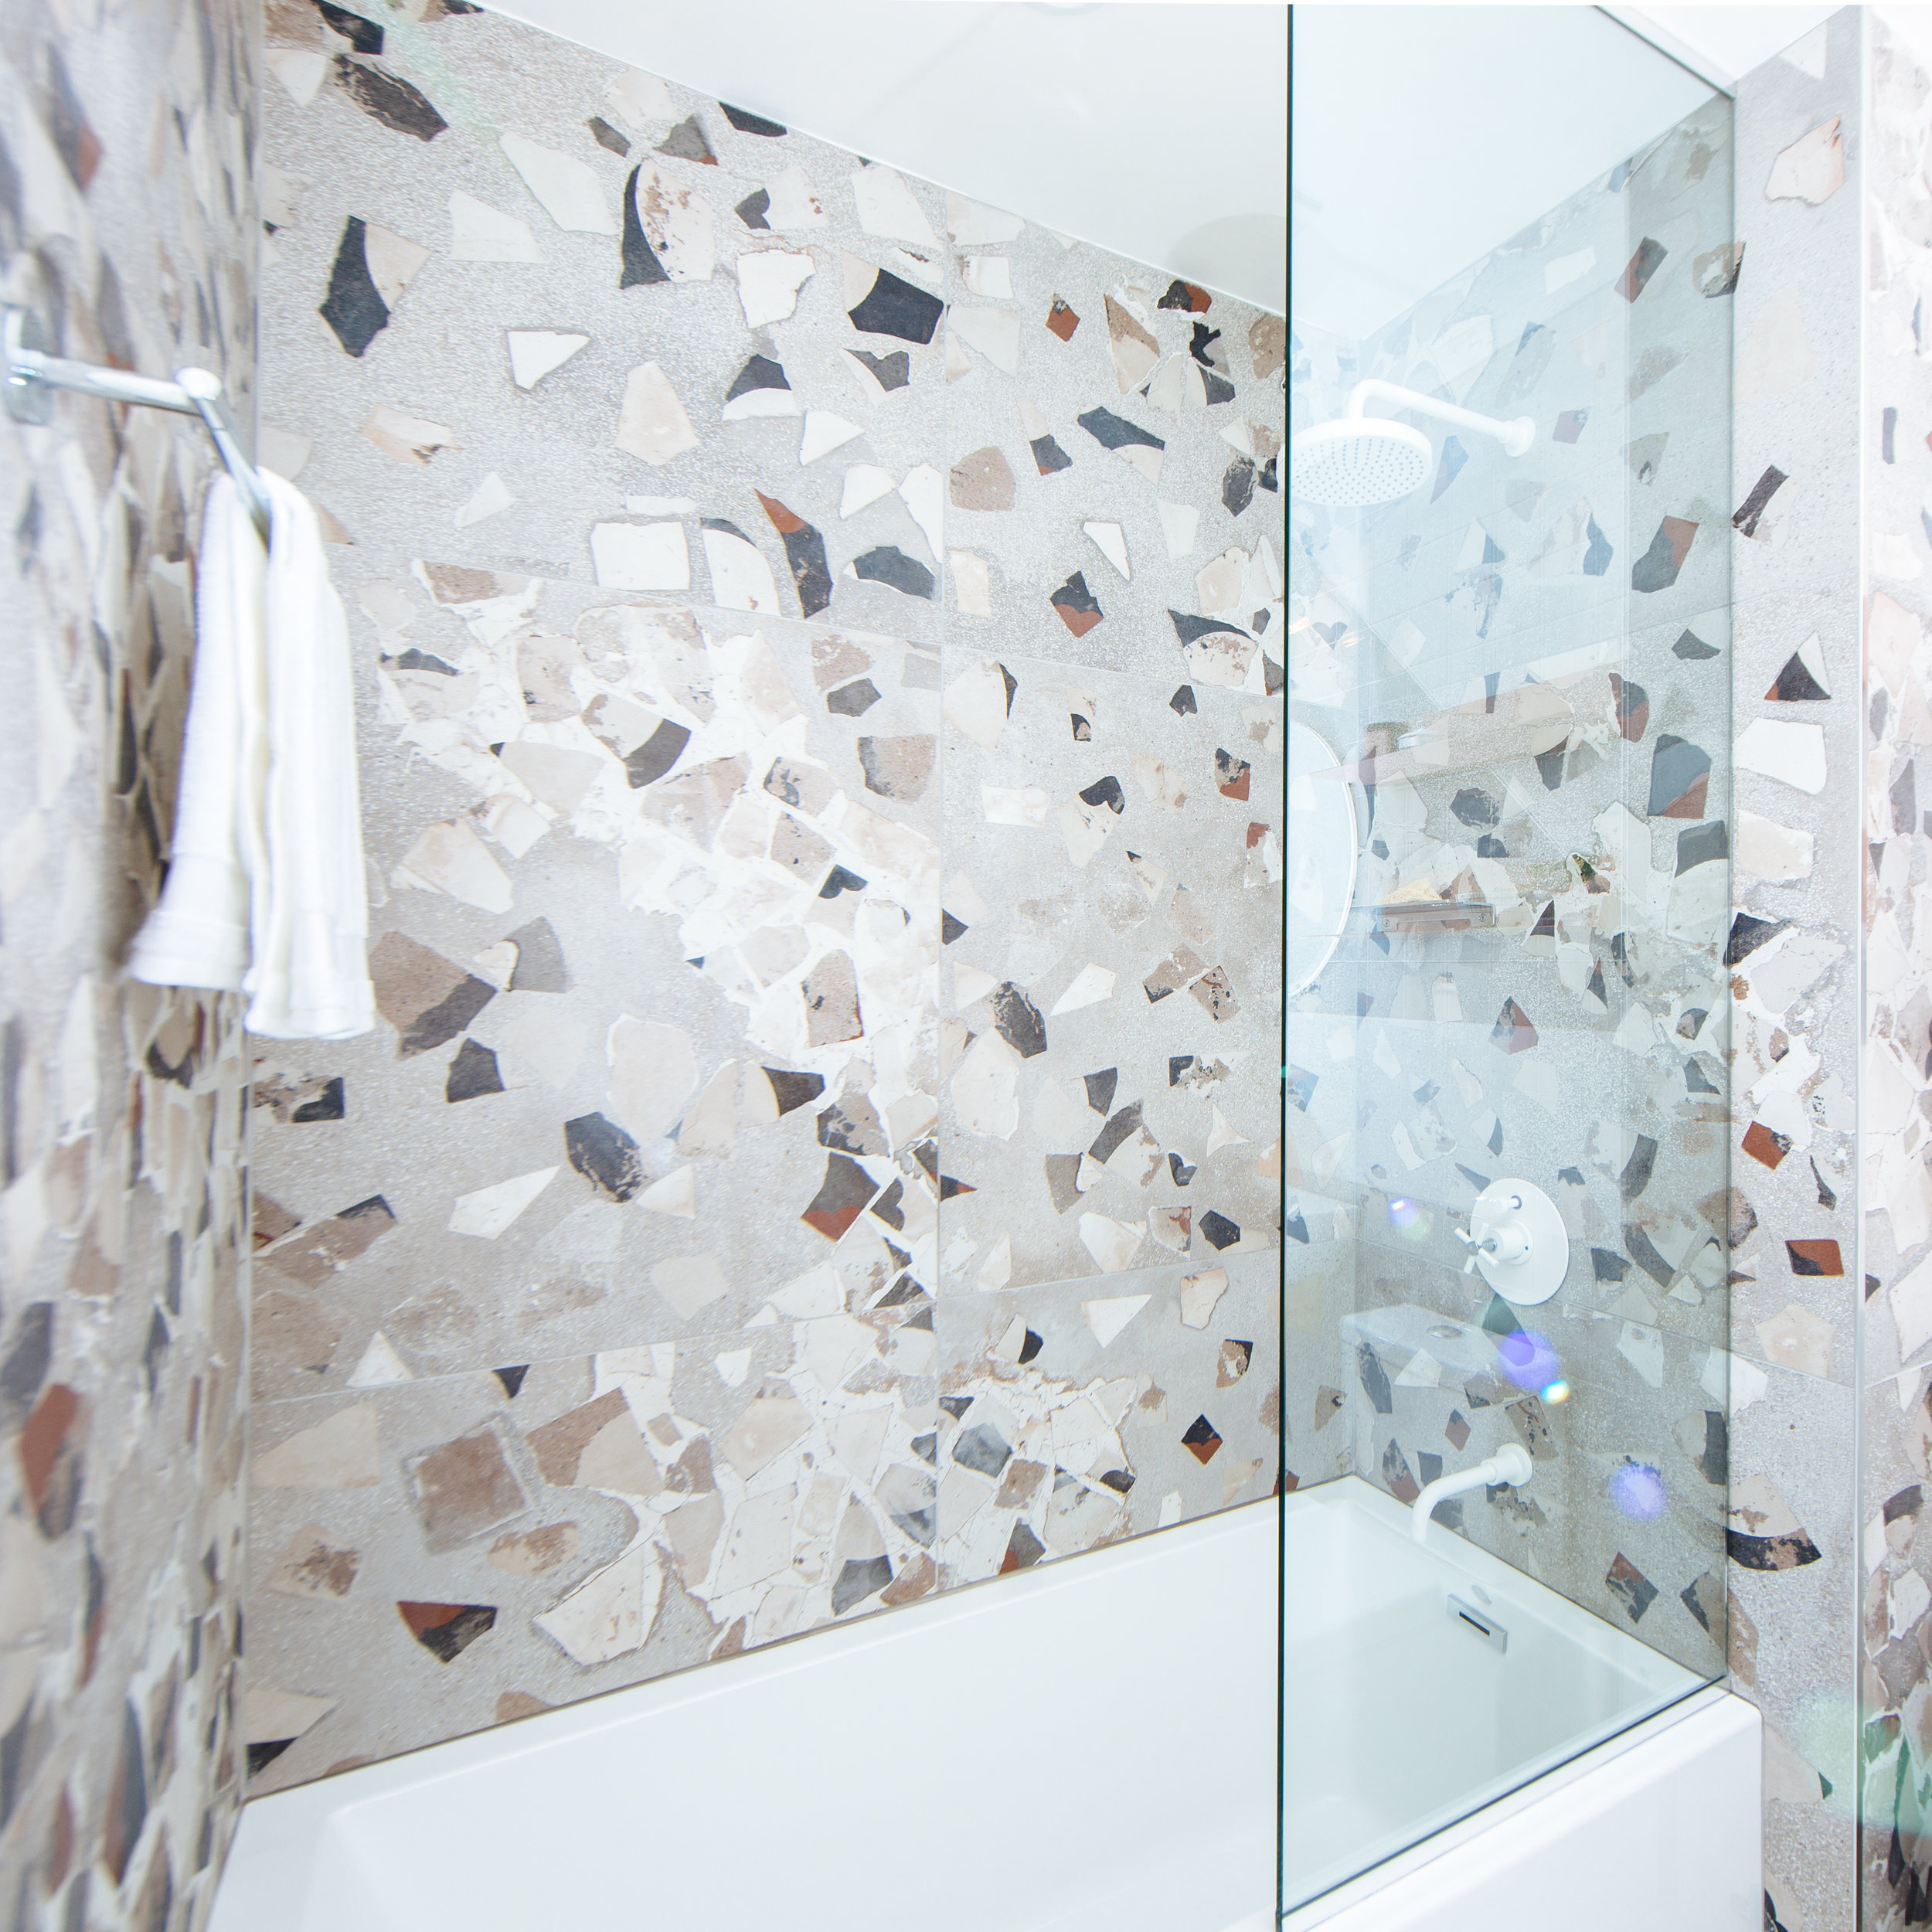 Terrazzo shower white fixtures futuristic interior design